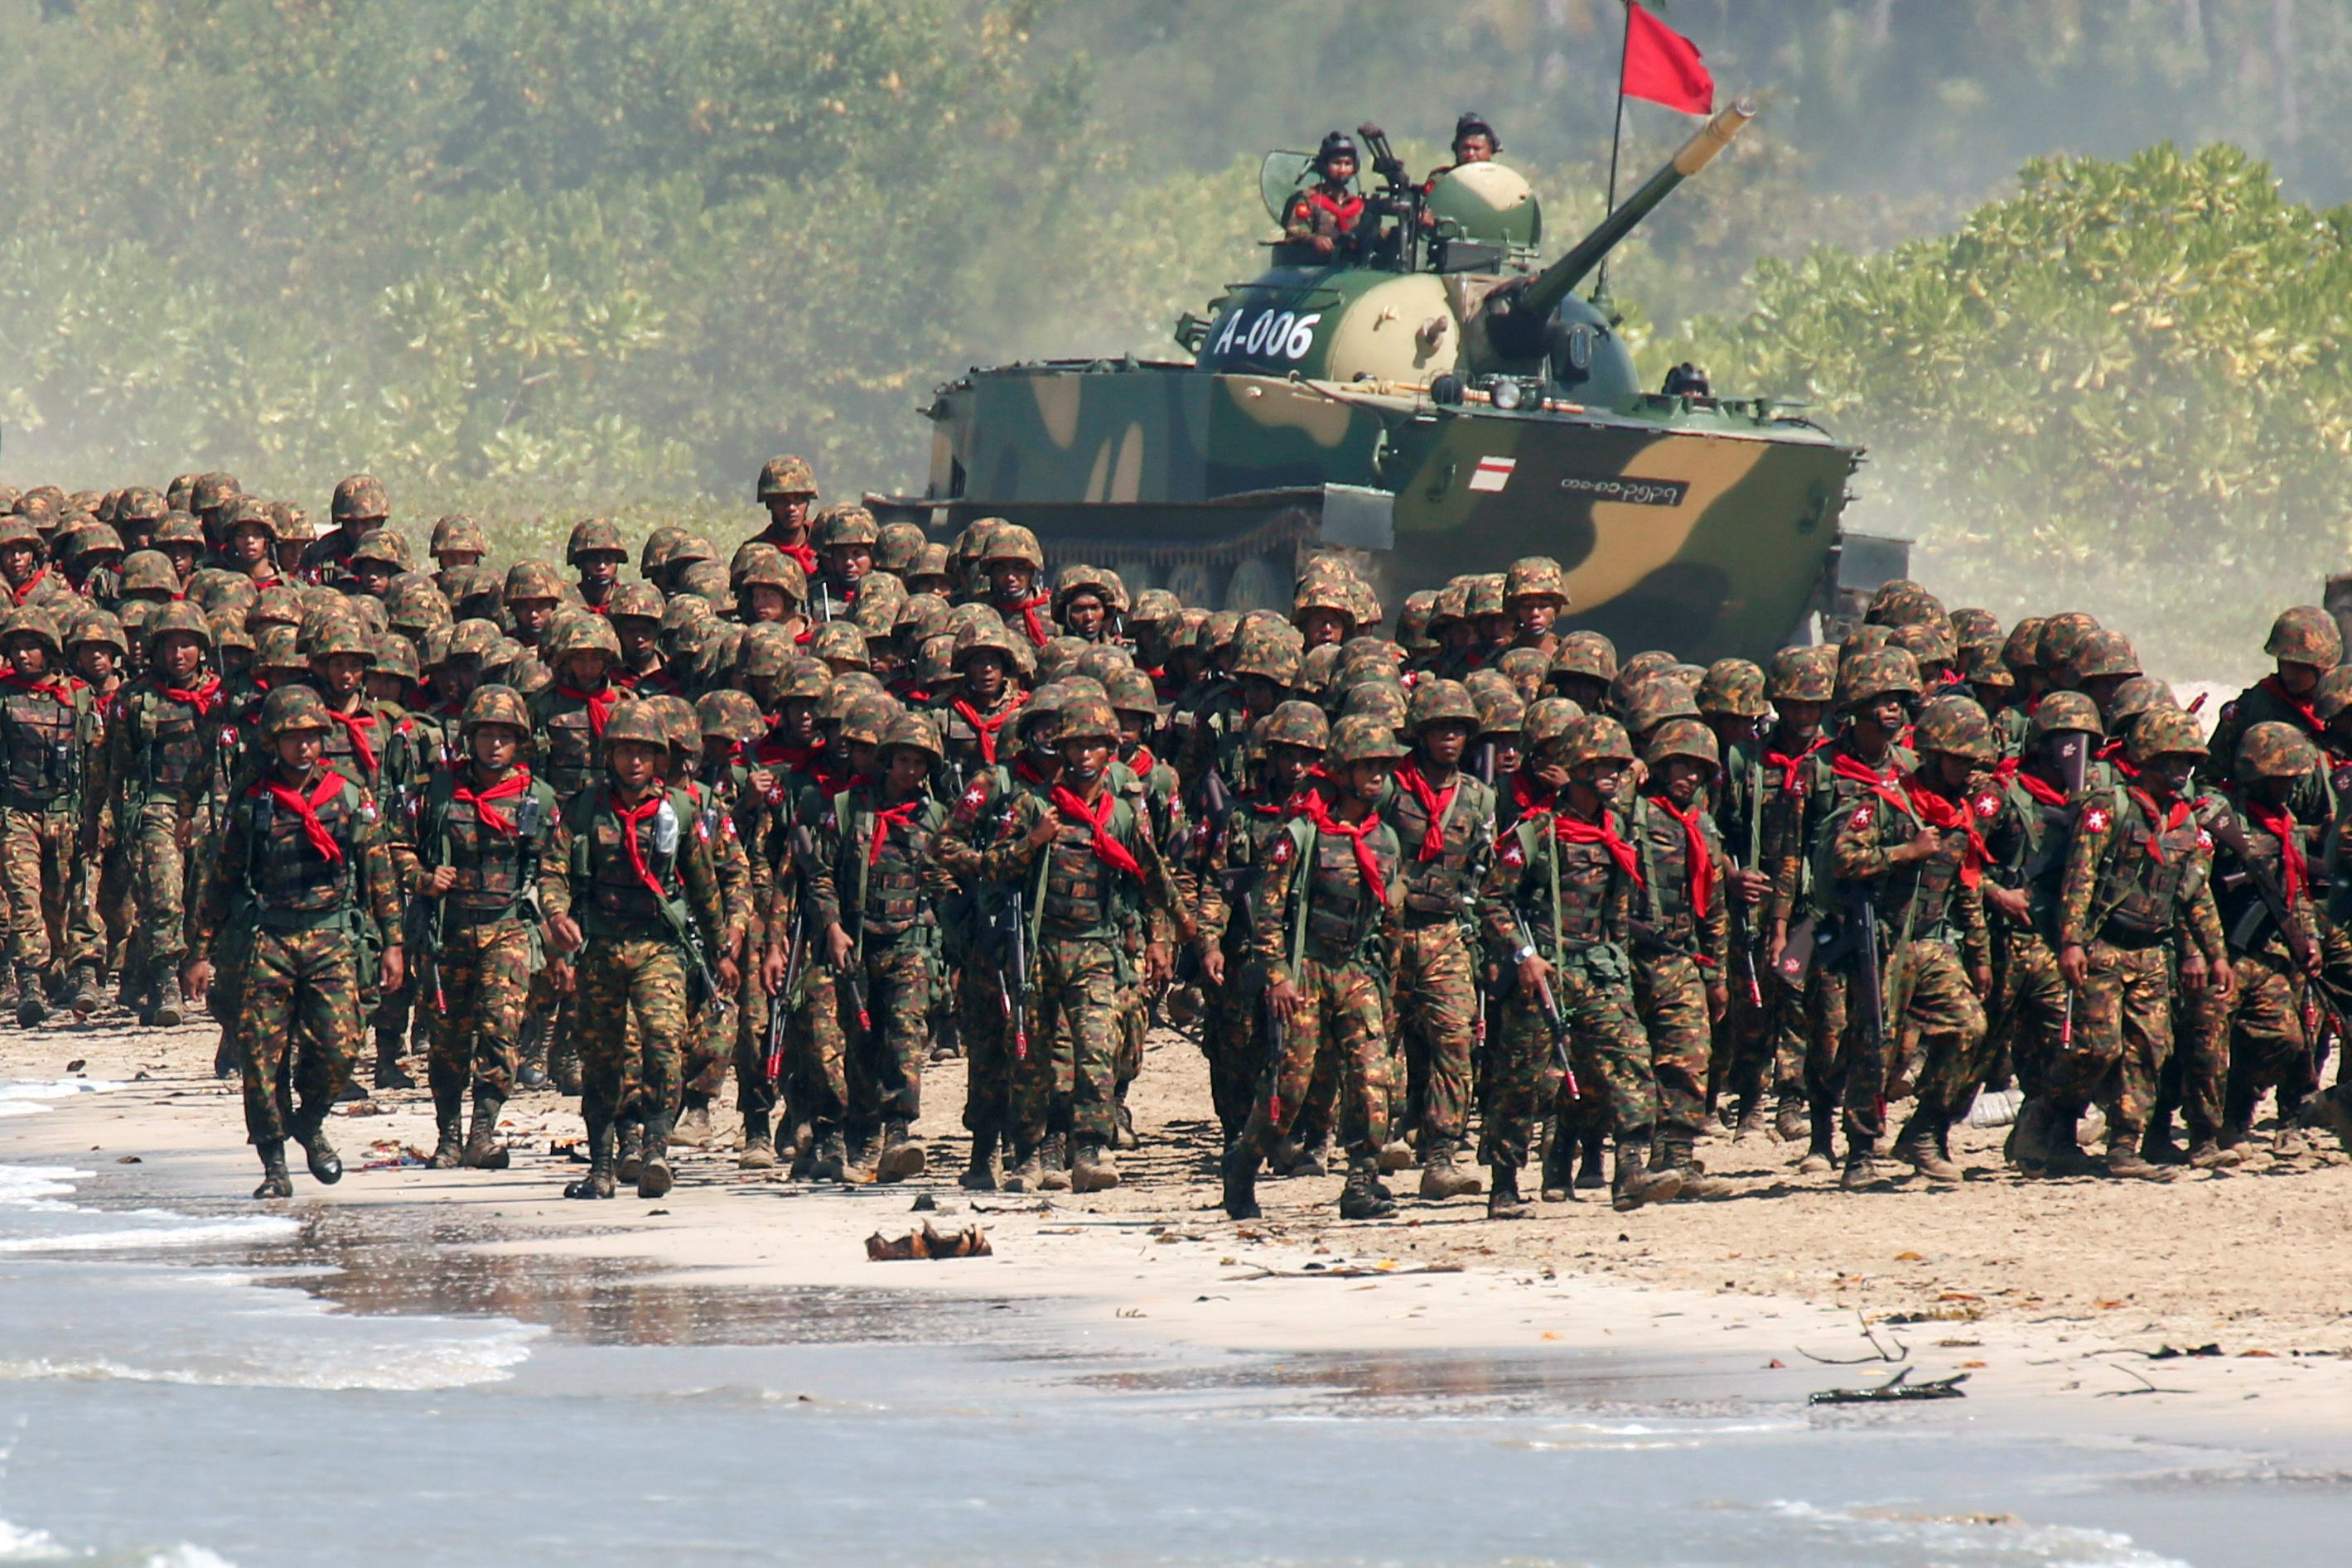 Myanmar military troops take part in a military exercise at Ayeyarwaddy delta region in Myanmar, February 3, 2018. REUTERS/Lynn Bo Bo/Pool